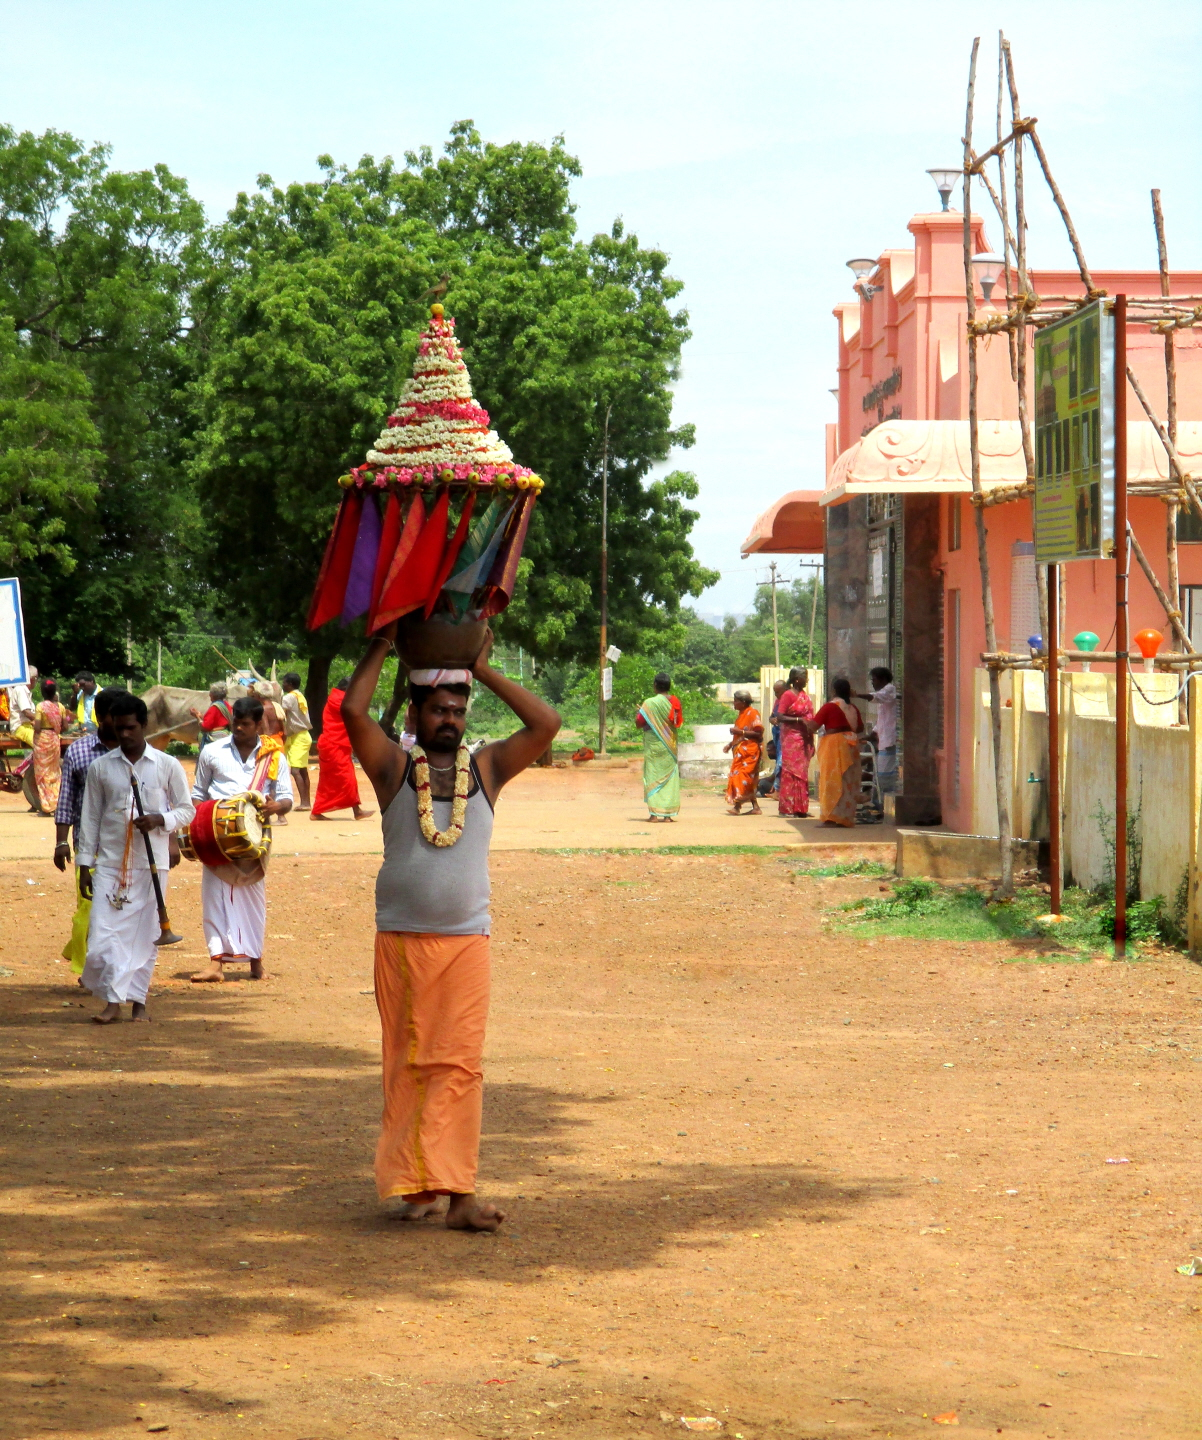 Procession of Devotees for village Goddess, Vadalur, Tamil Nadu, India